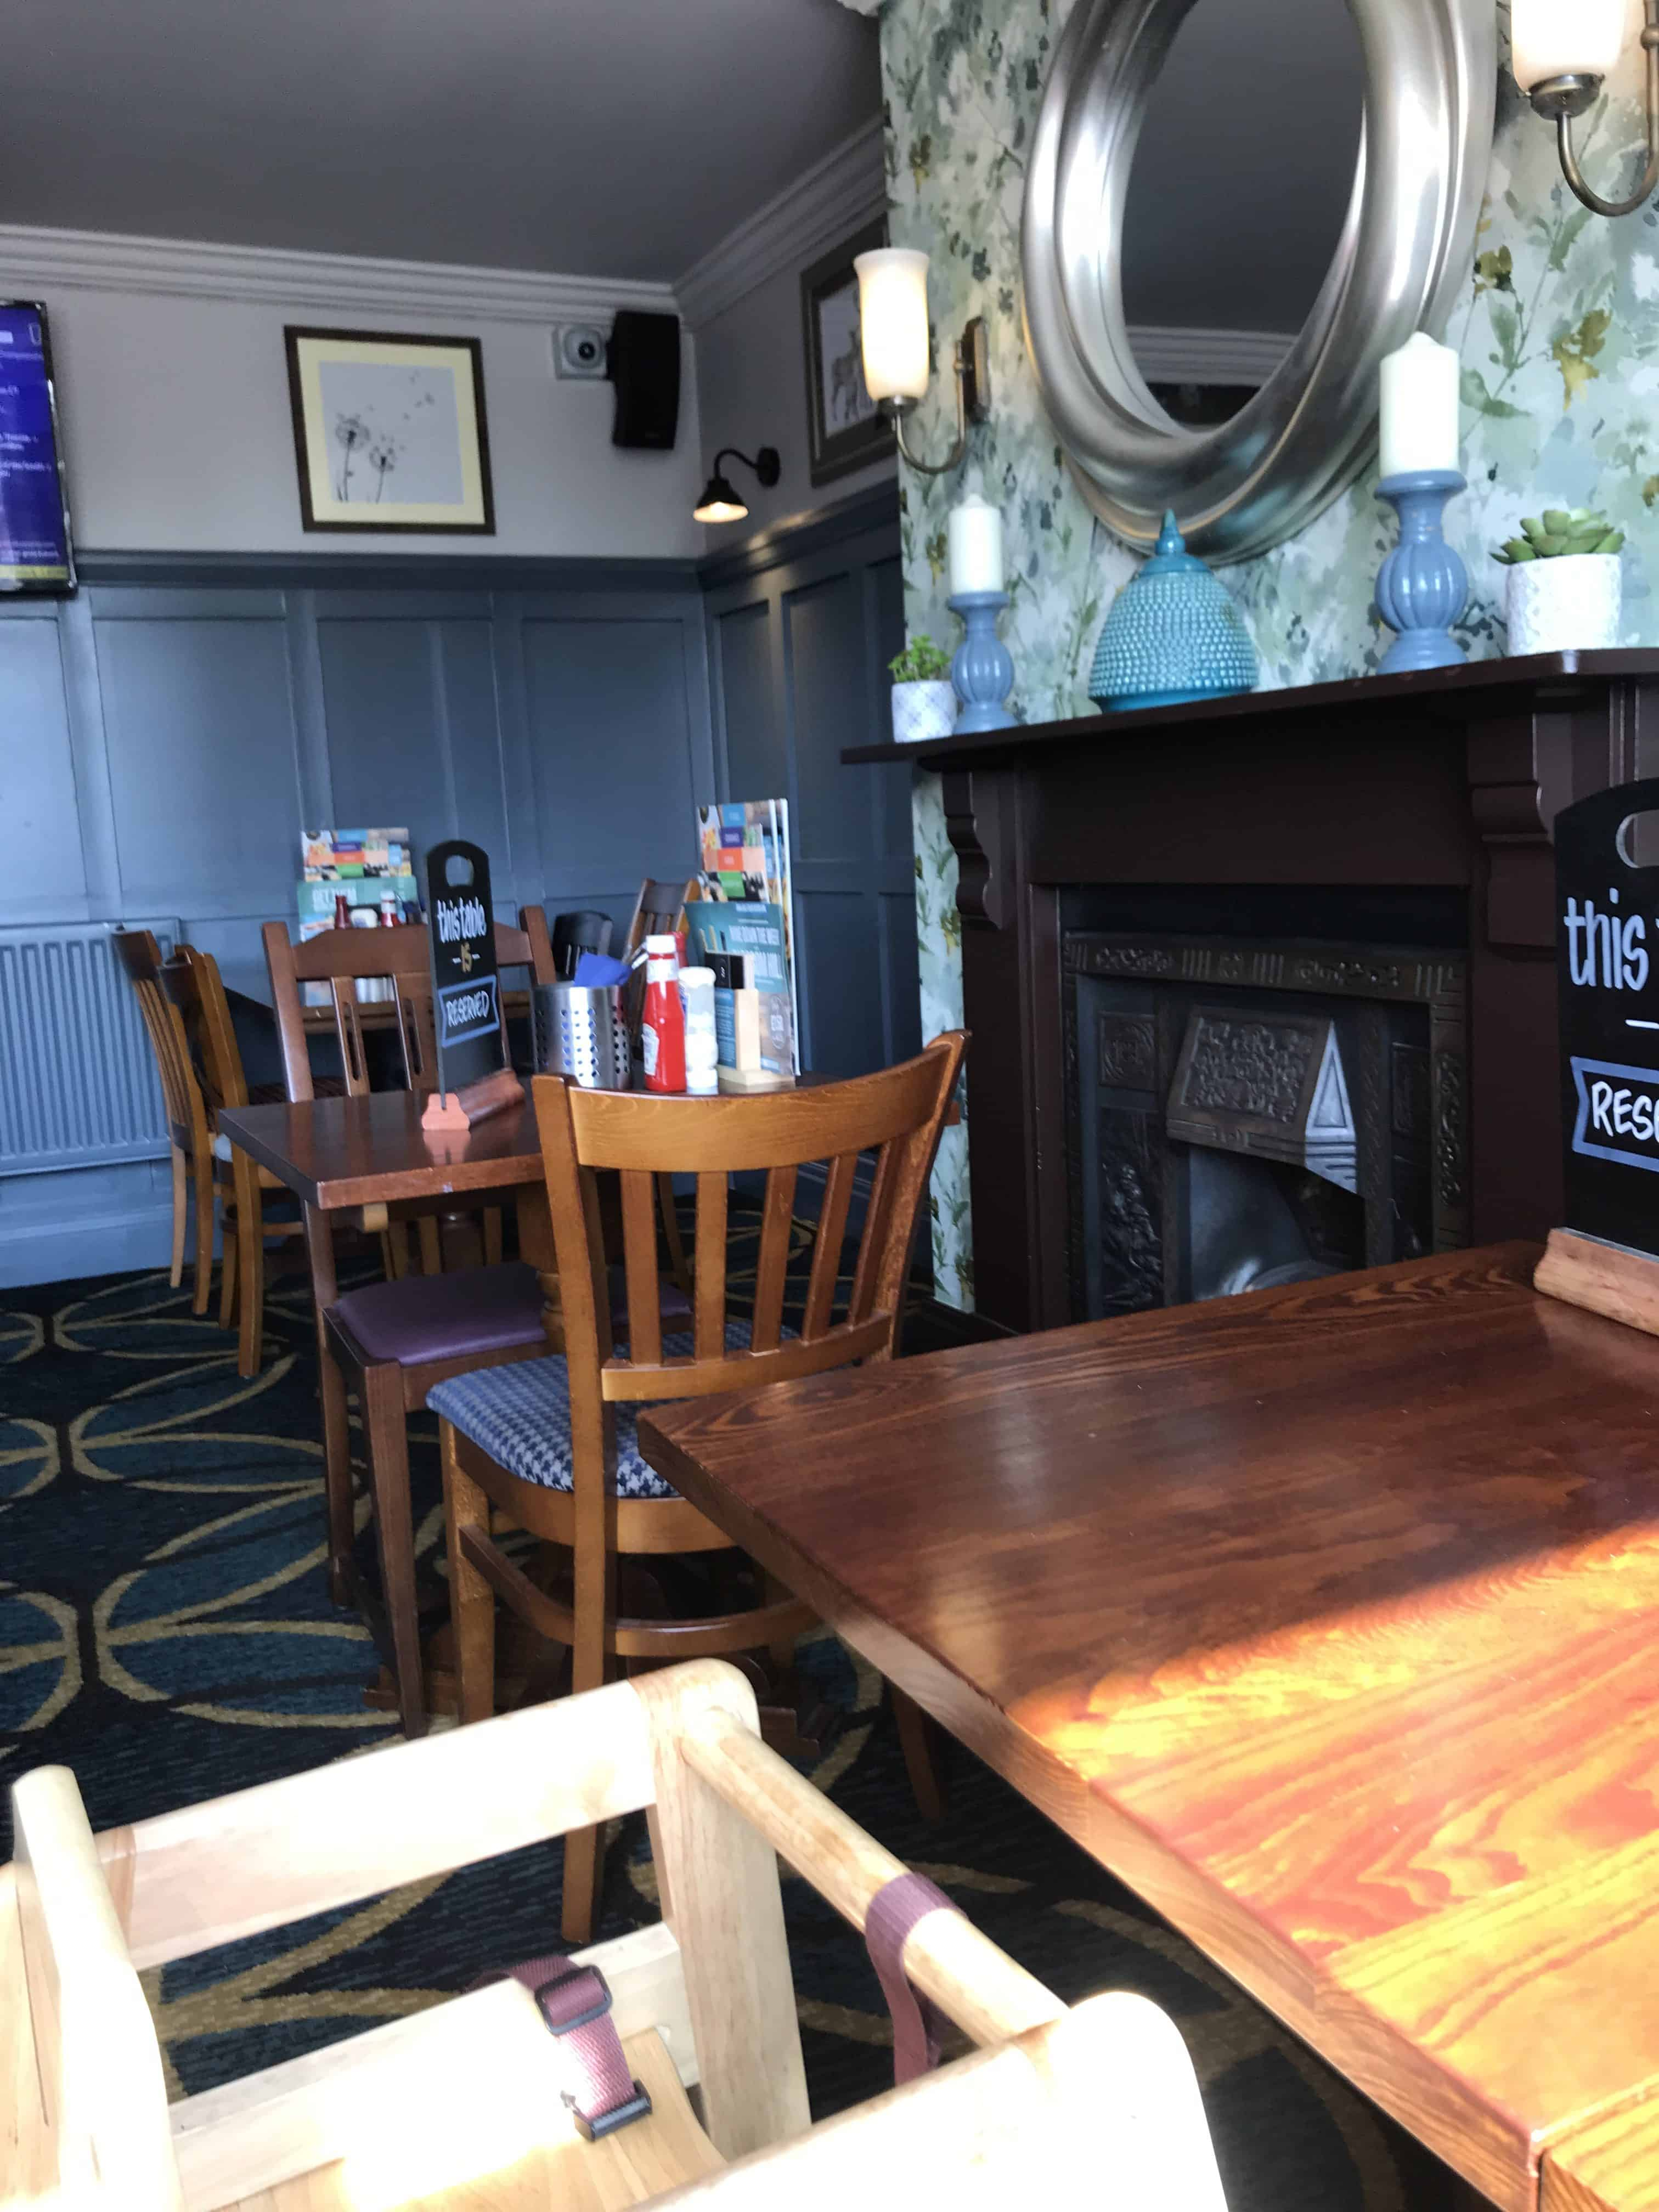 The Community room of the Merry Hill Pub and Grill